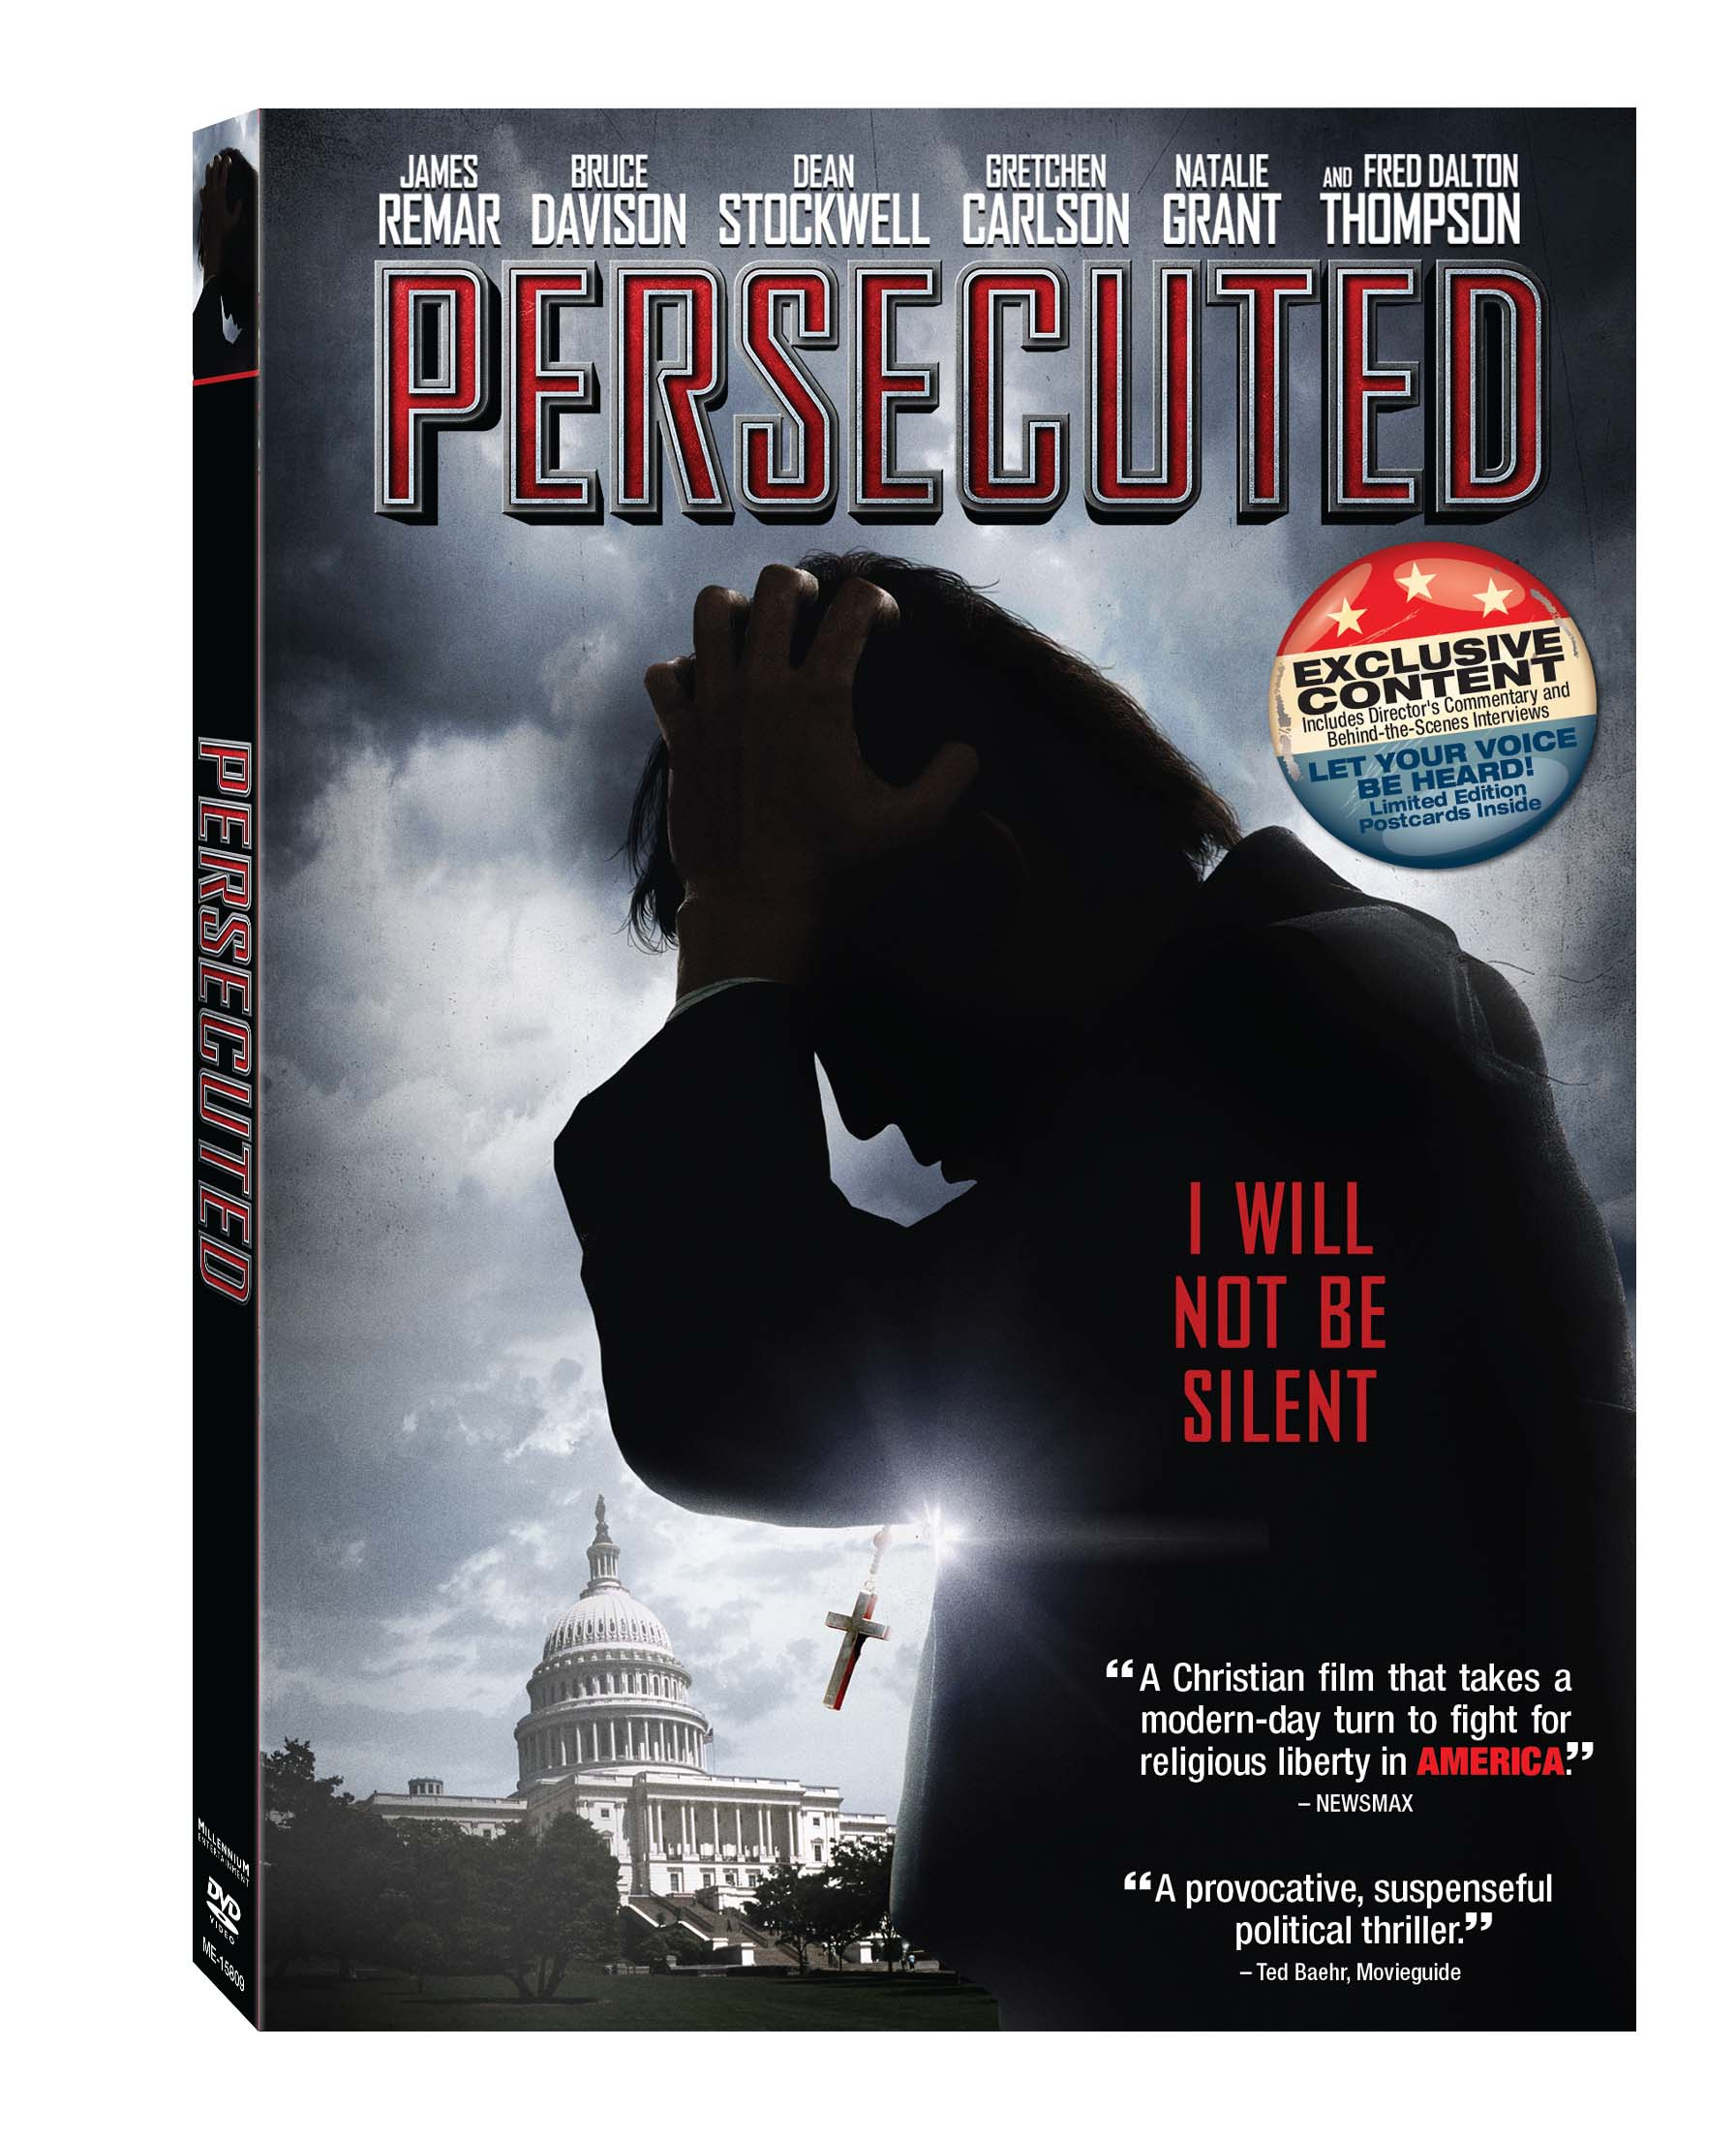 Persecuted Blu-ray Review